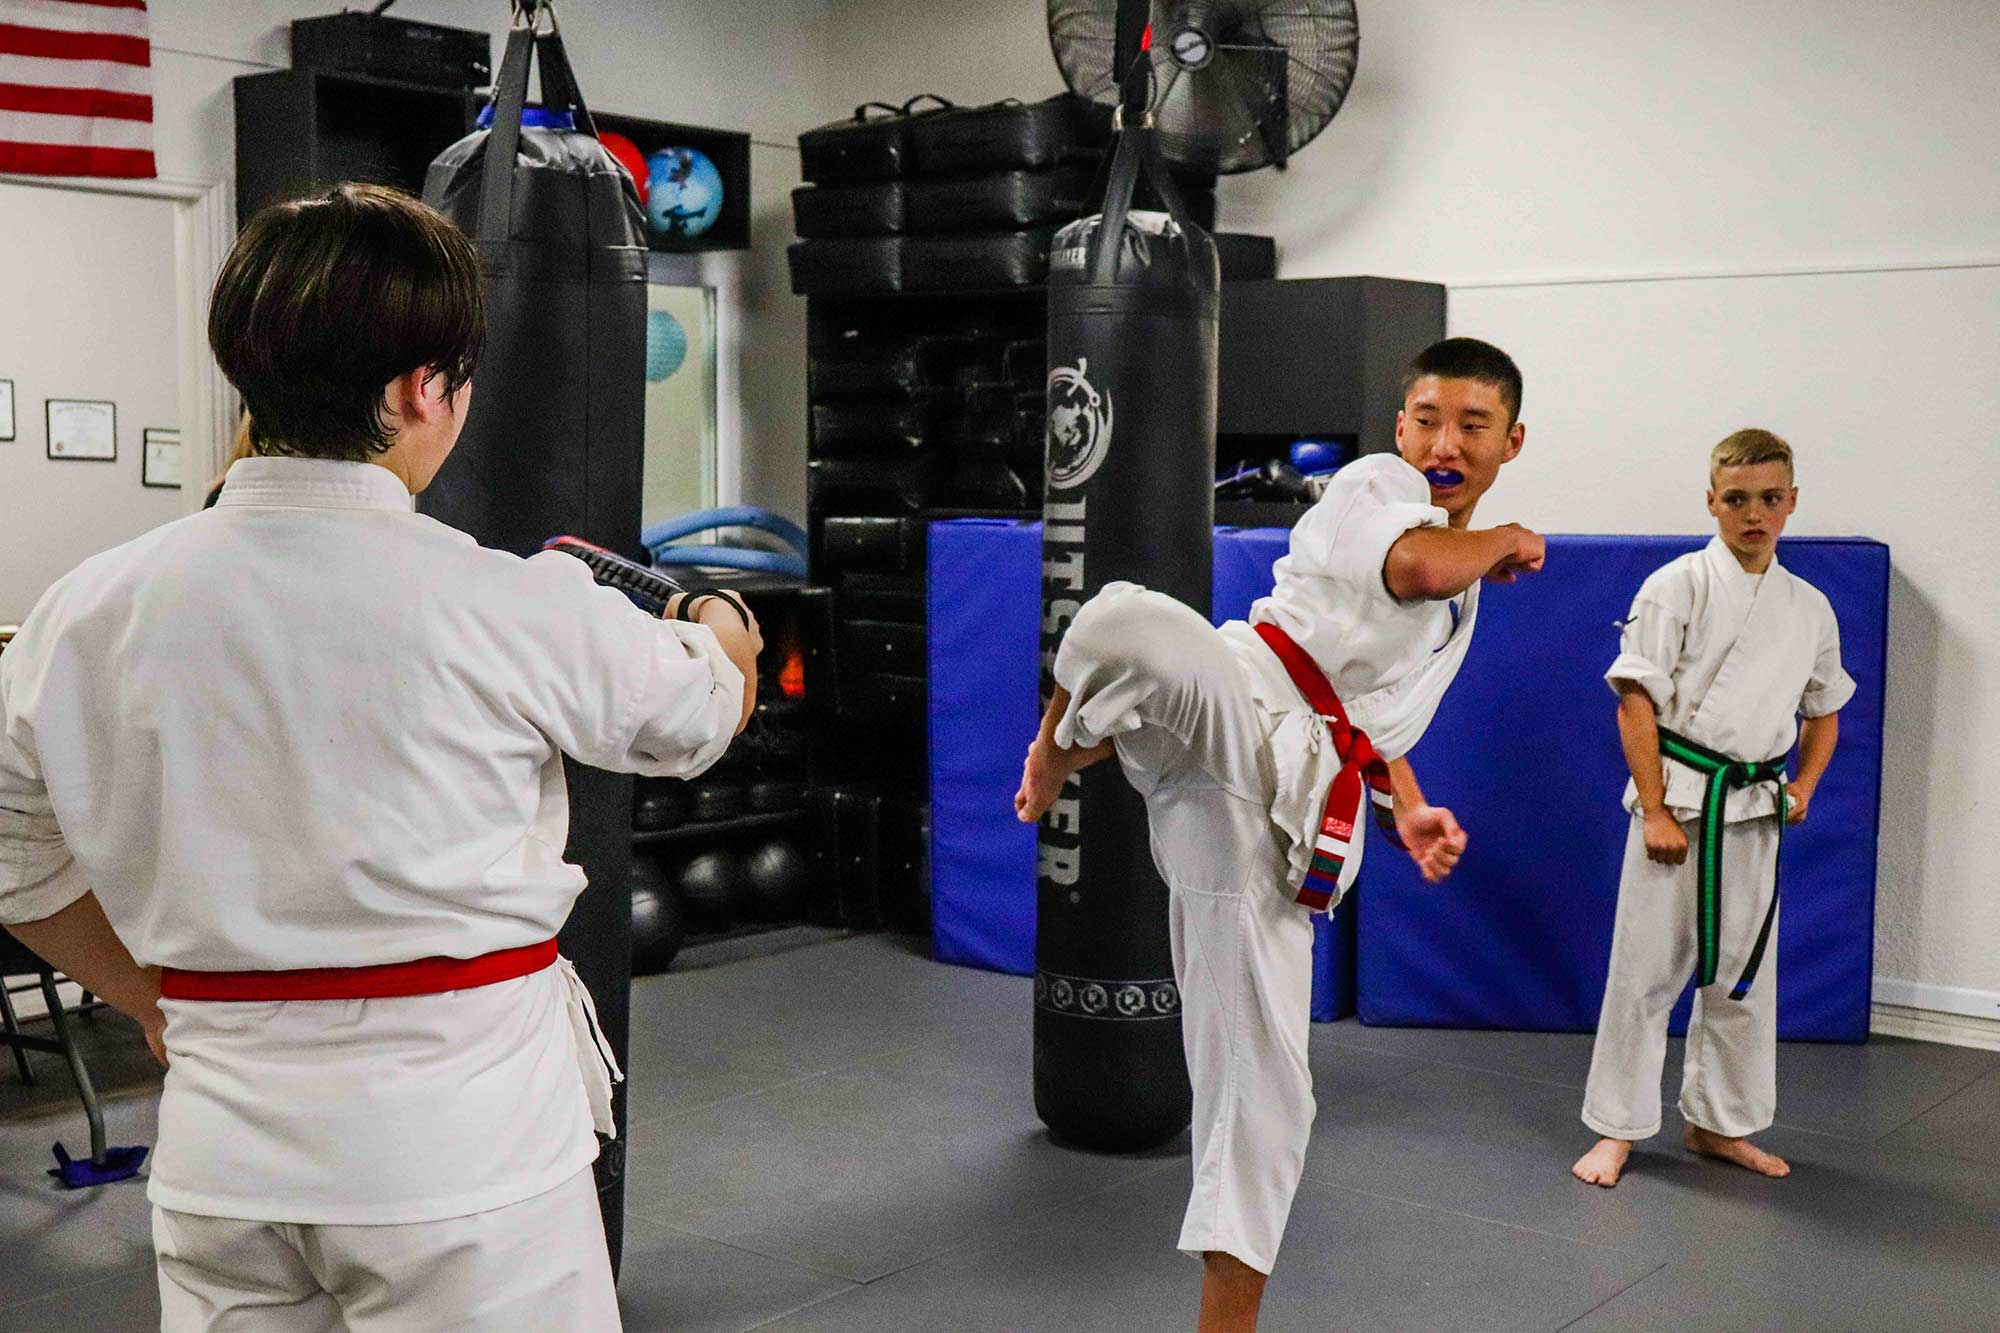 building character with martial arts